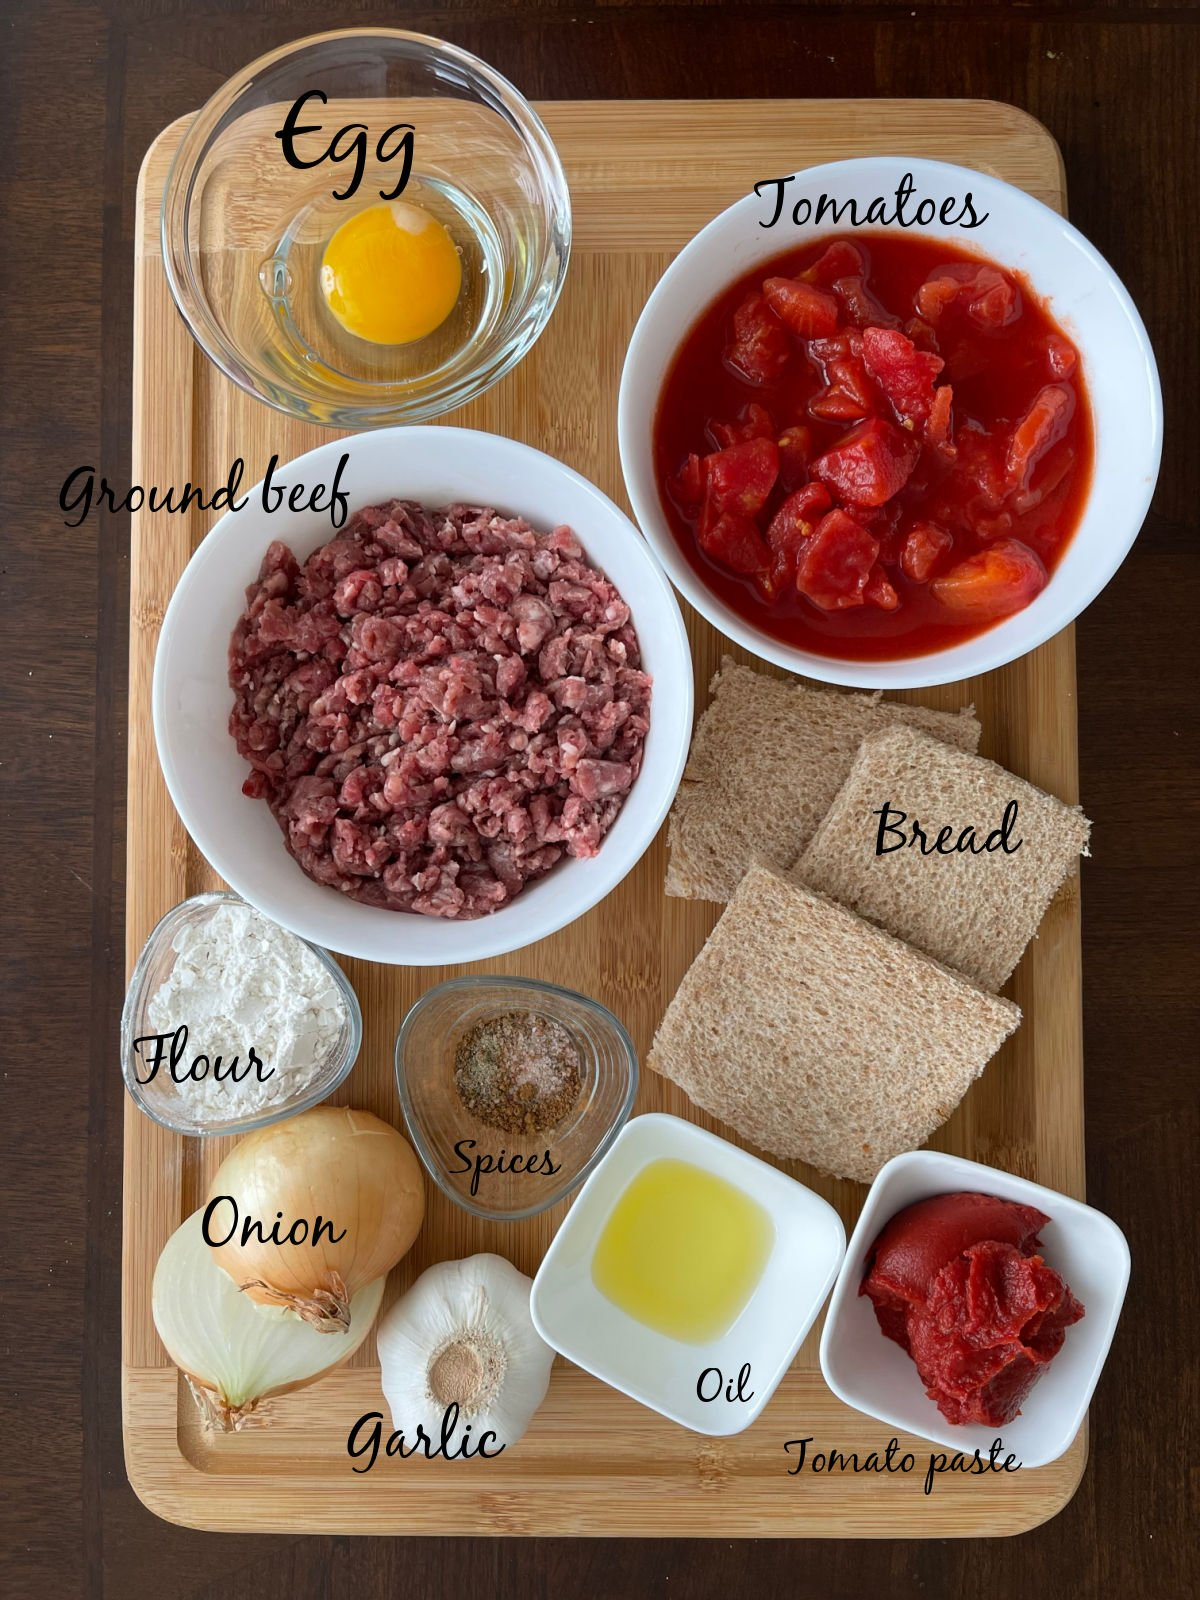 To make this recipe you need ground beef, spices, bread, tomato paste, tomatoes, flour and onion.